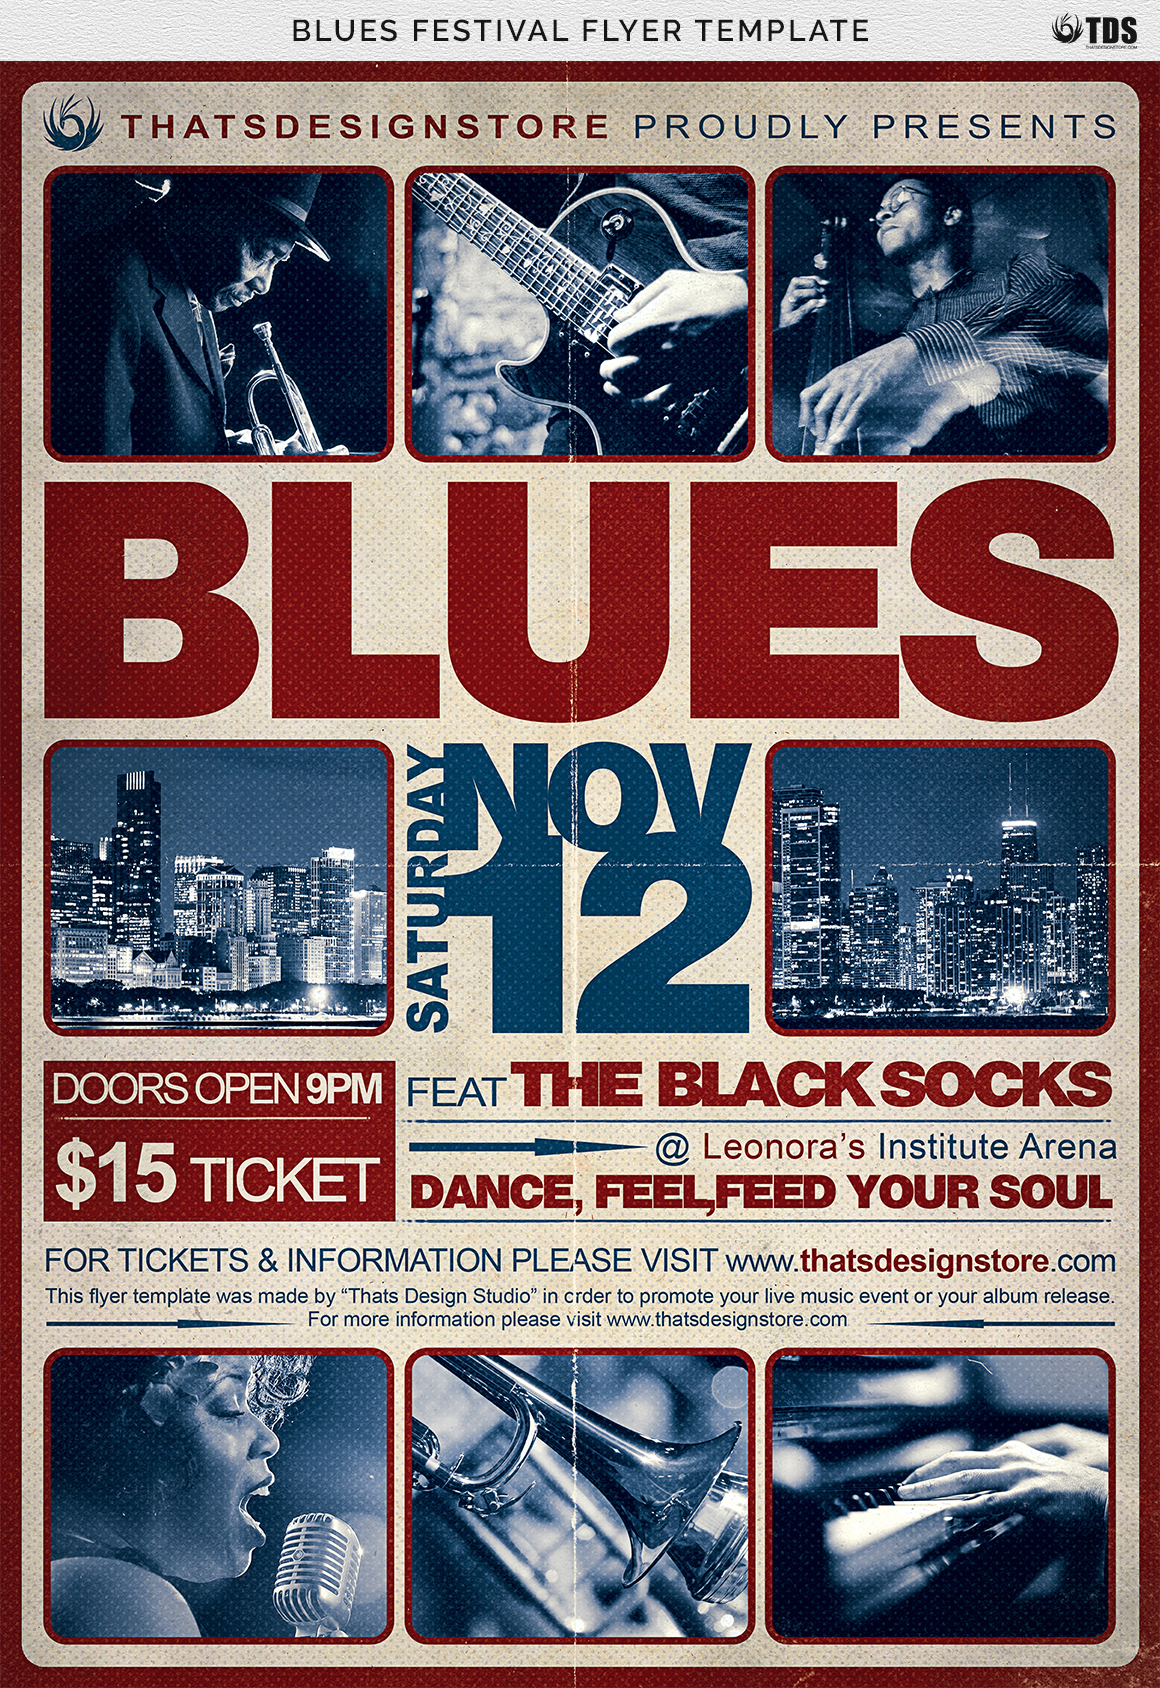 Blues Festival Flyer Template V2 example image 9